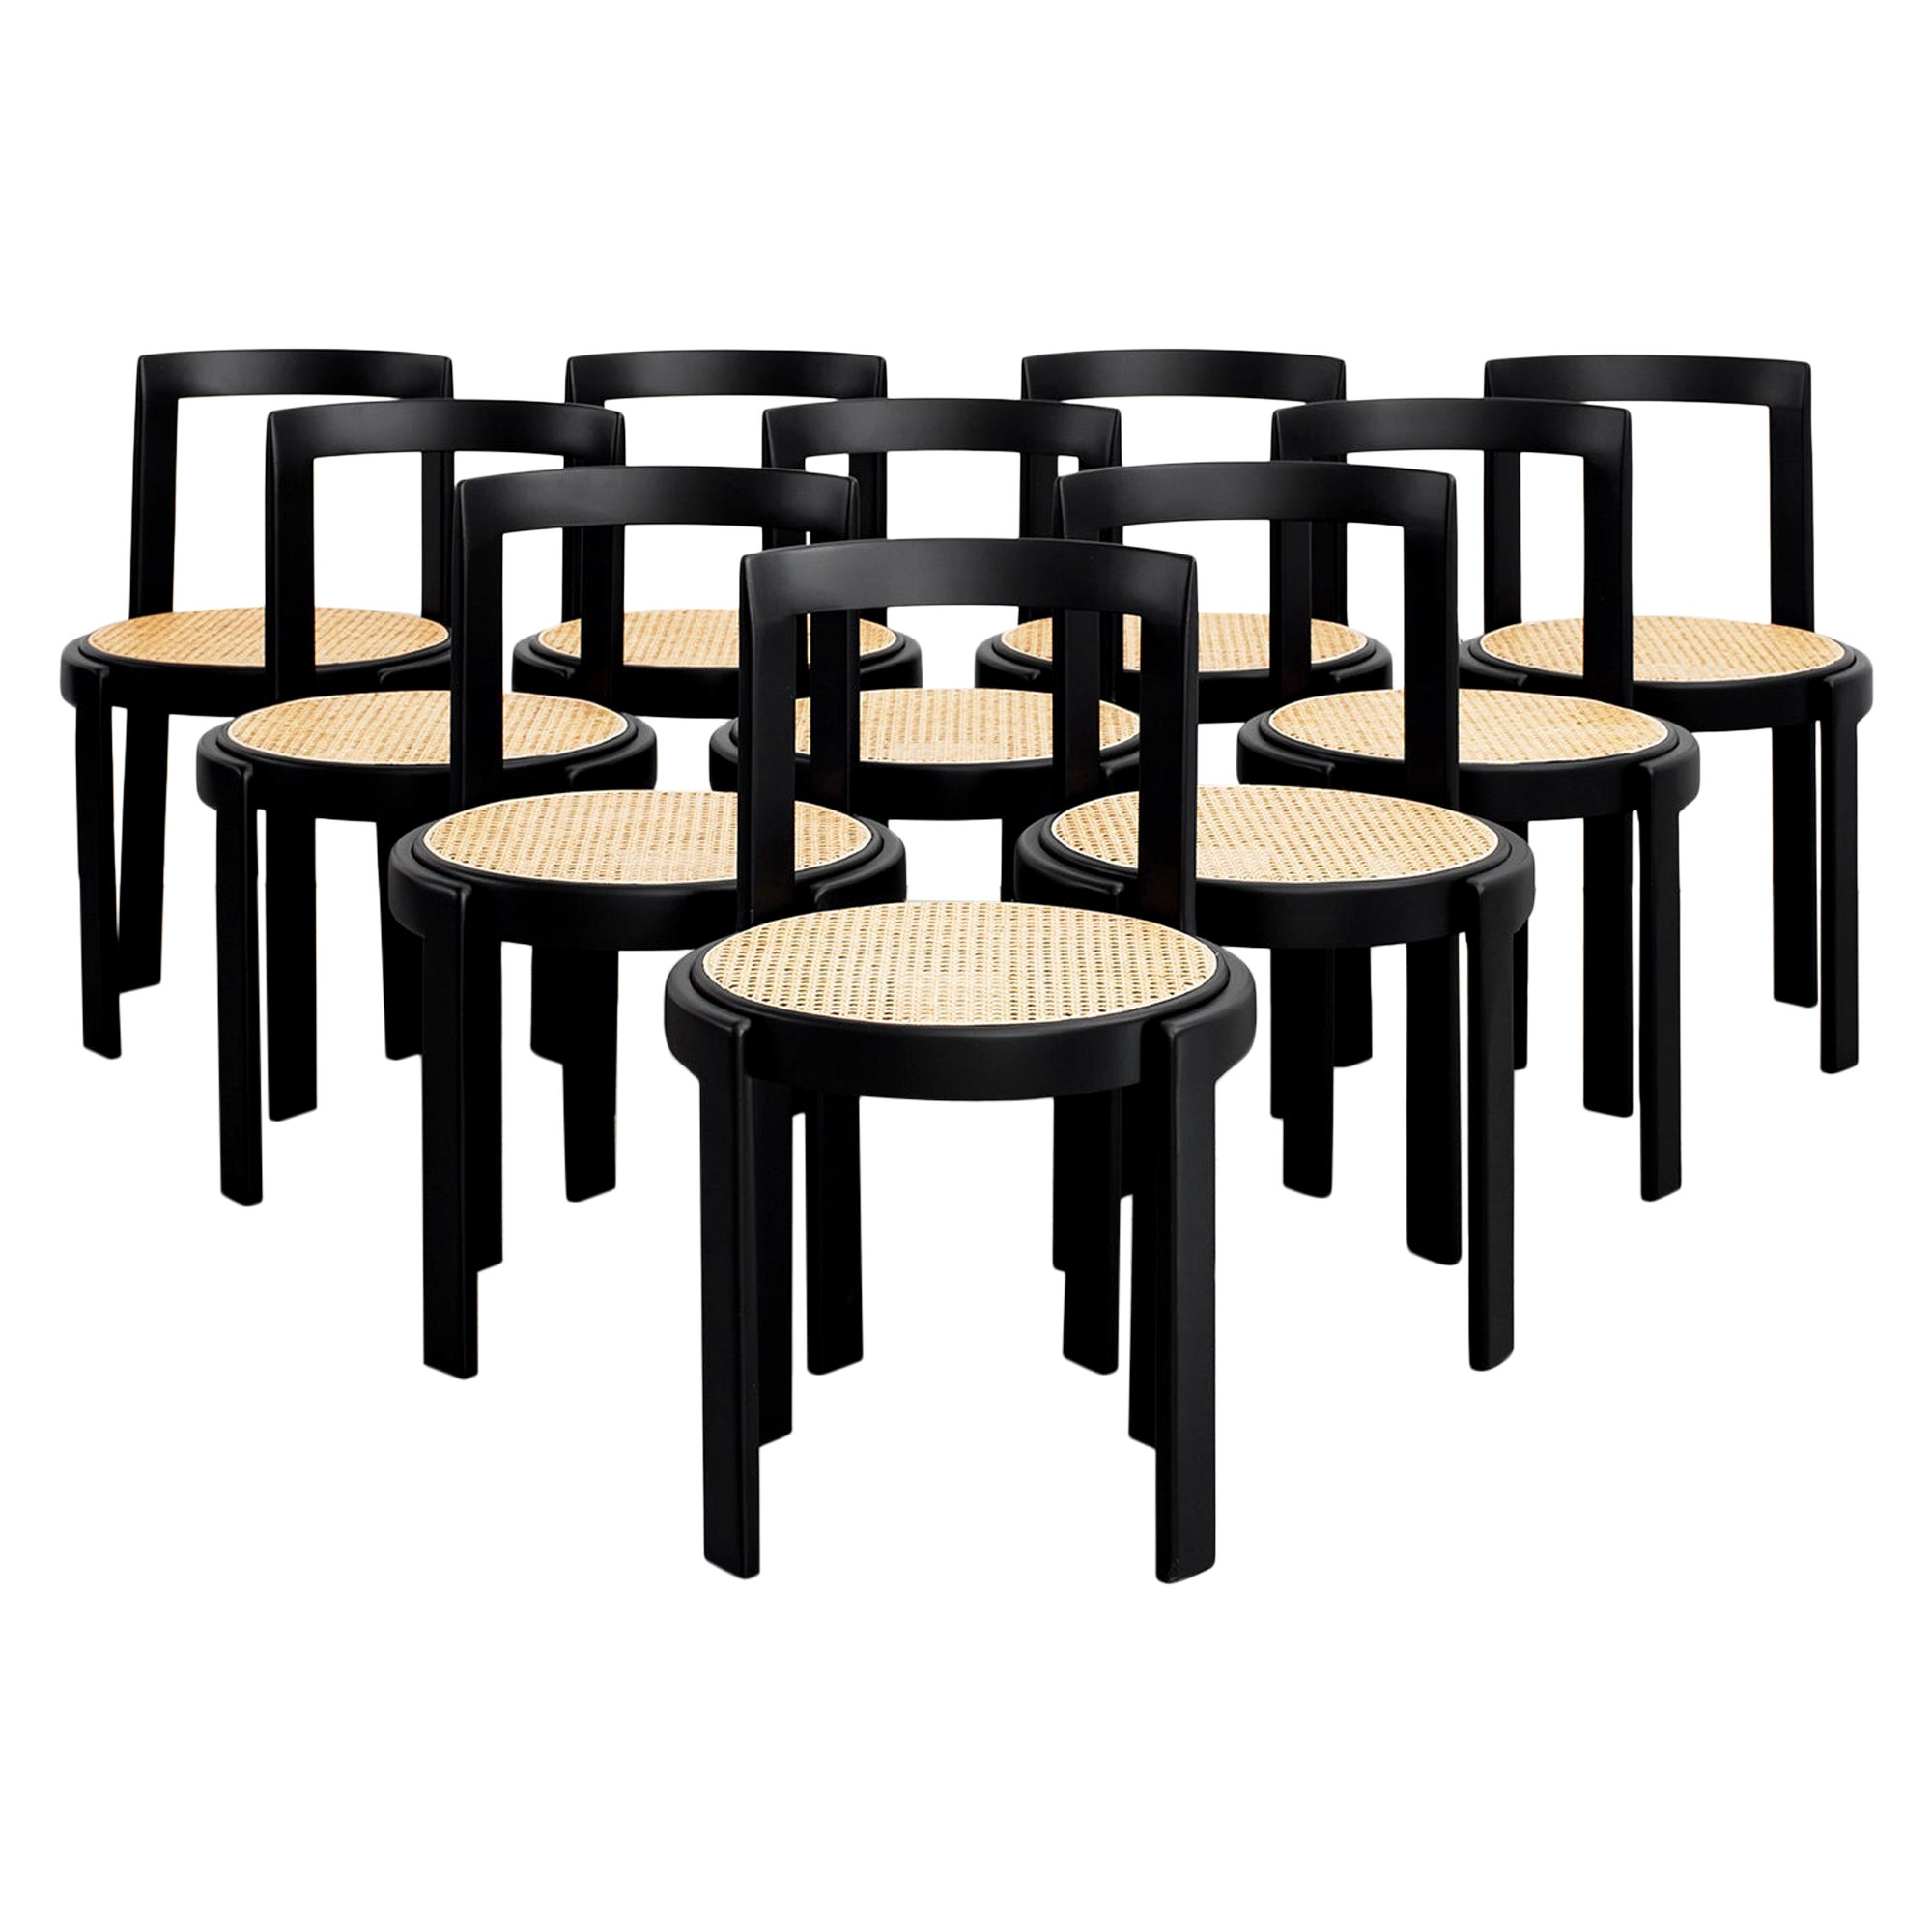 Italian Bentwood Caned Chairs, Set of 10